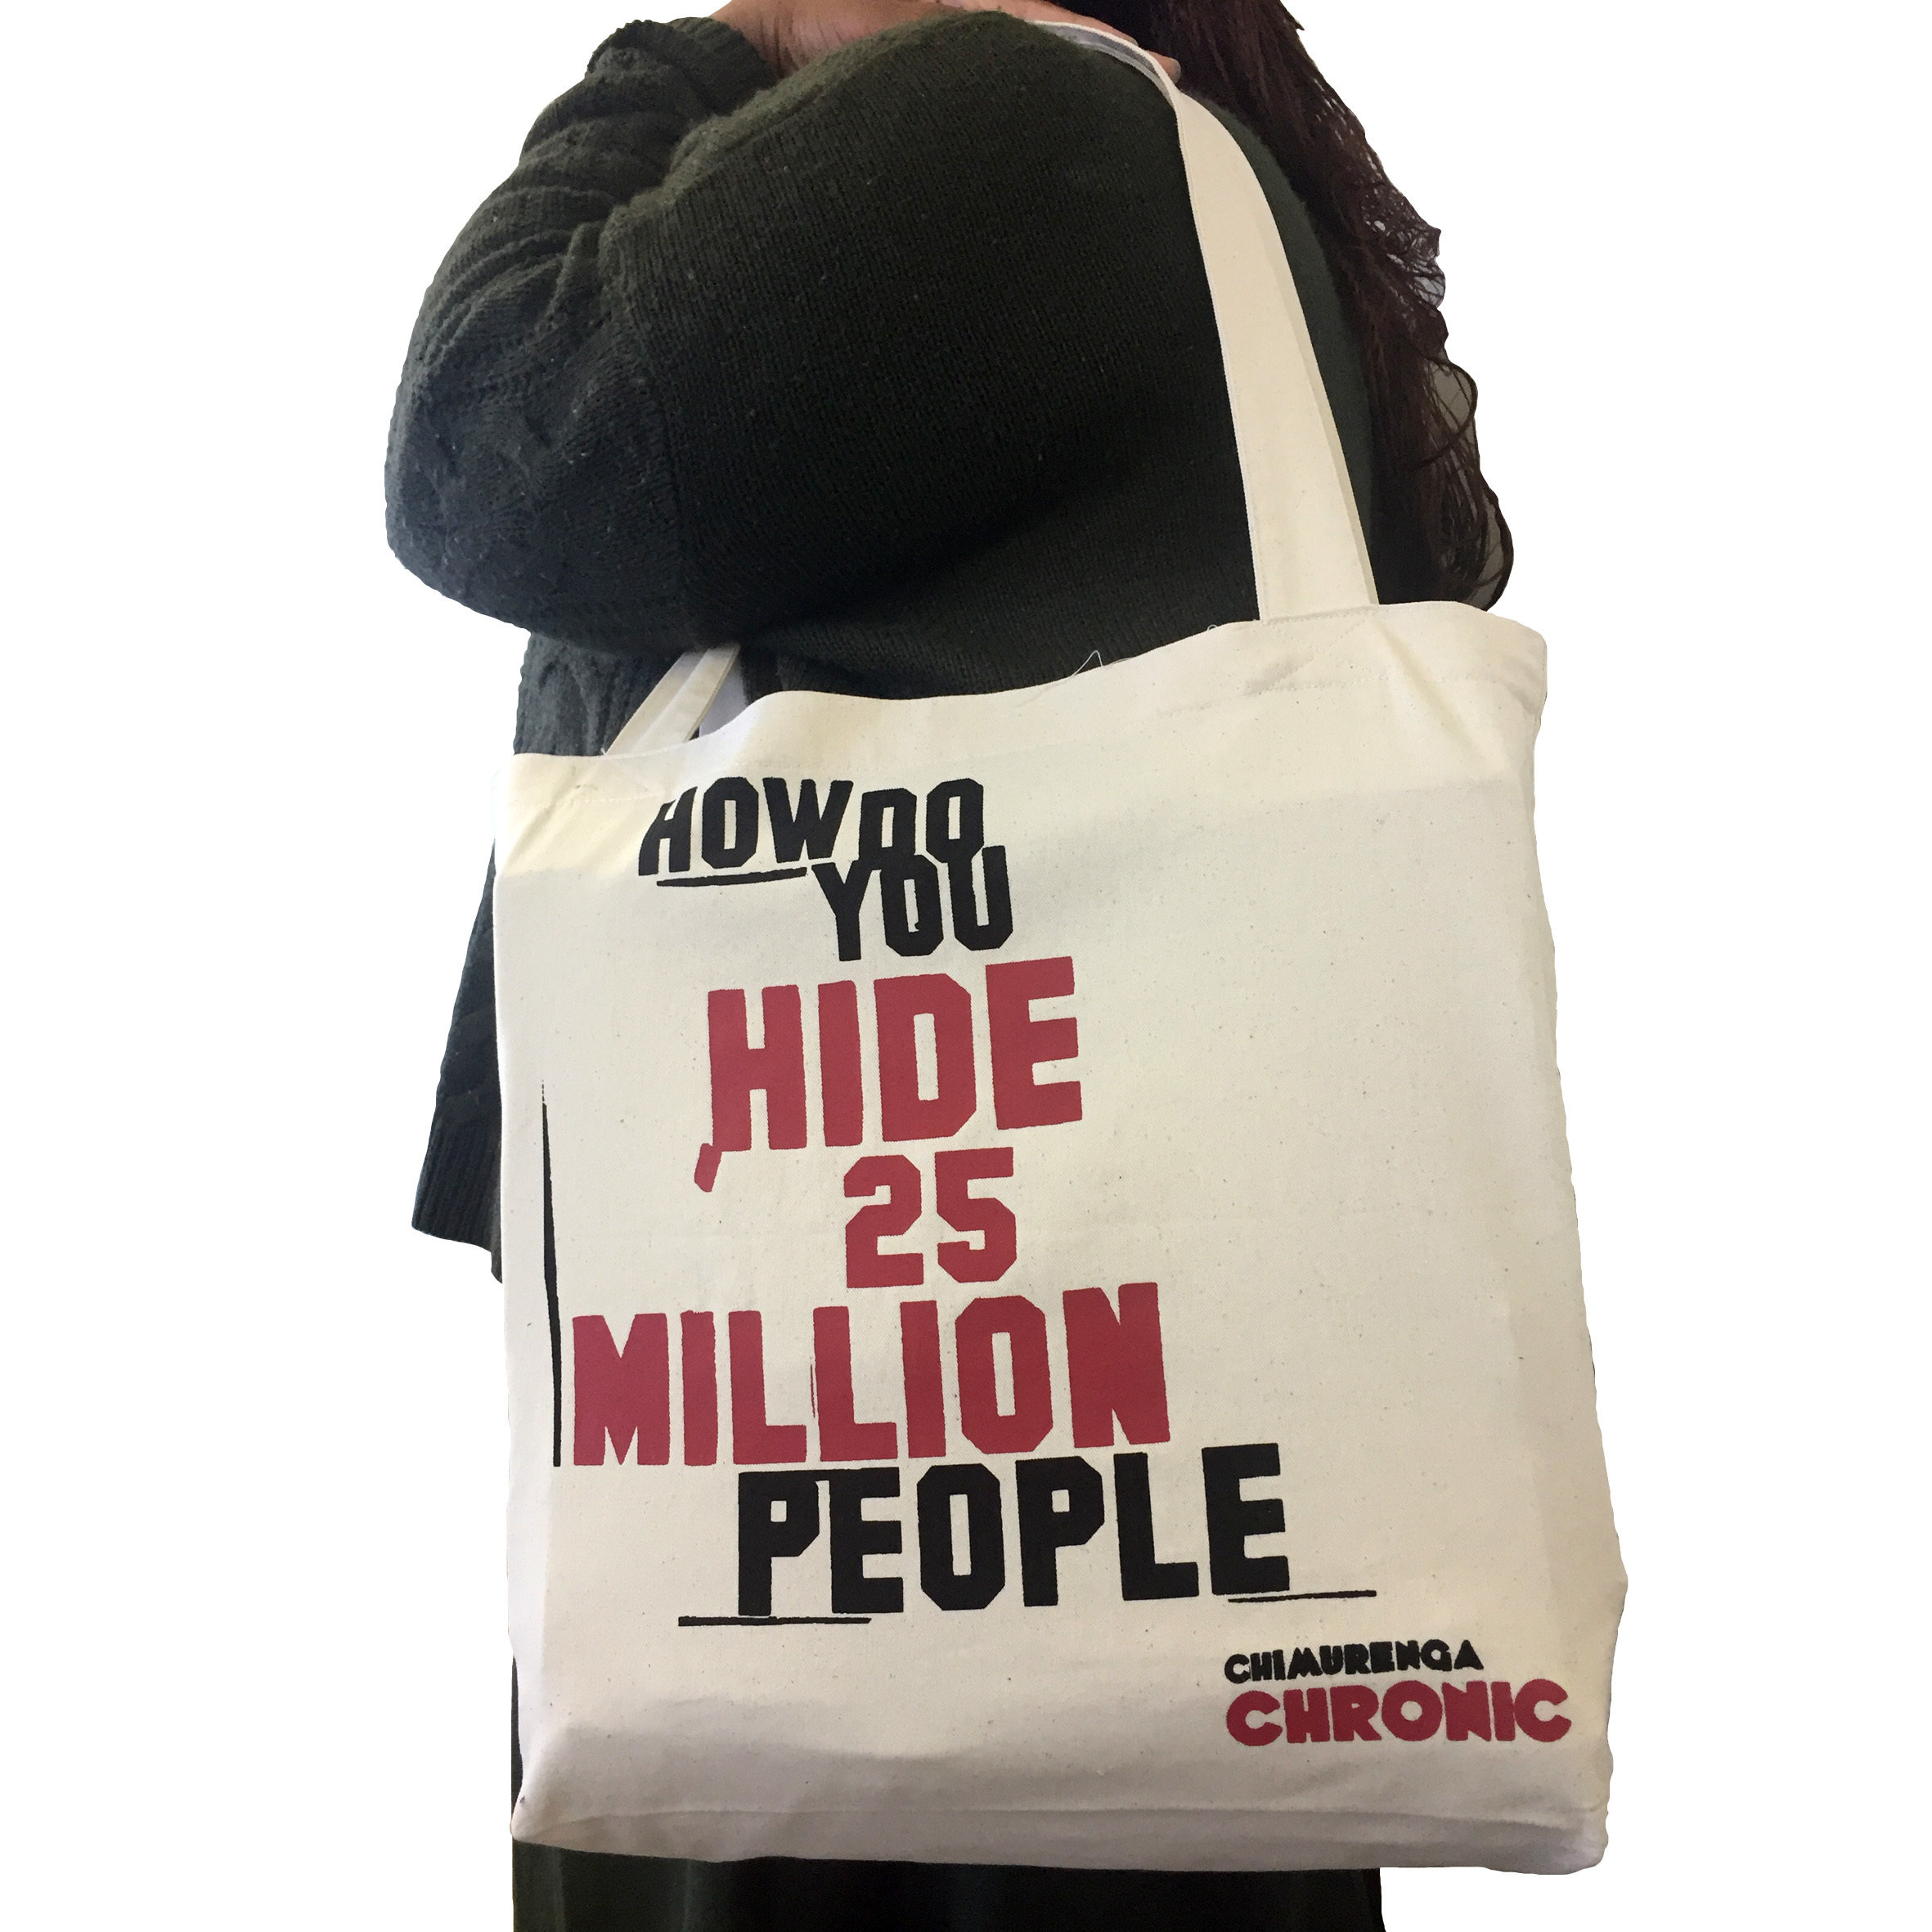 Chimurenga Chronic Tote Bag –How Do You Hide 25 million People CCTB04